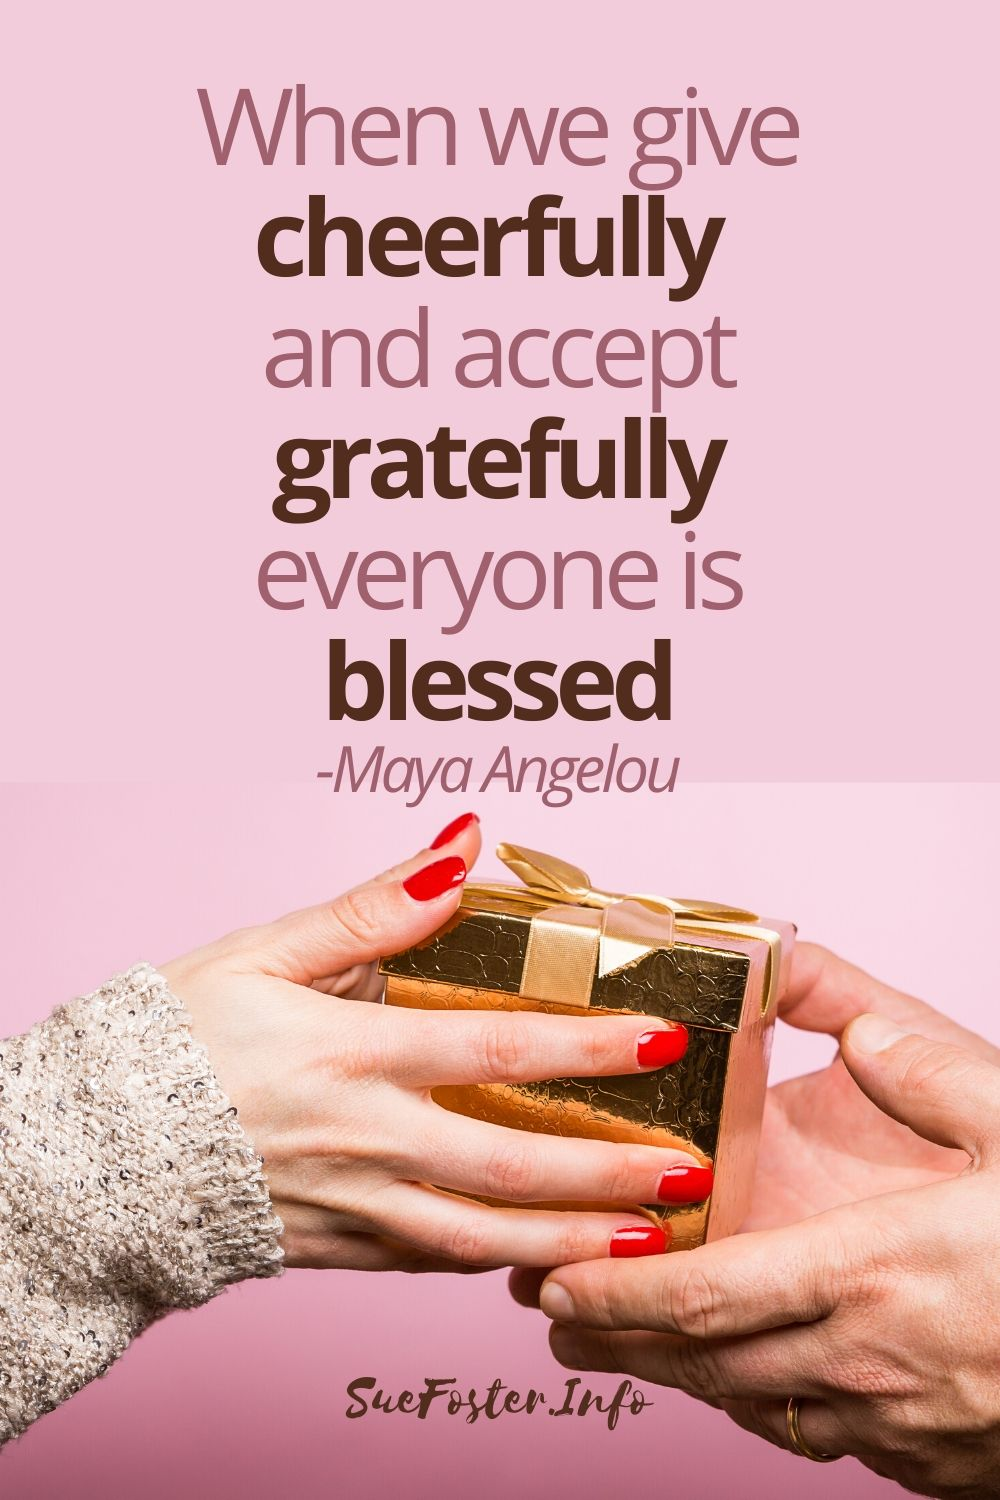 When we give cheerfully and accept gratefully everyone is blessed.